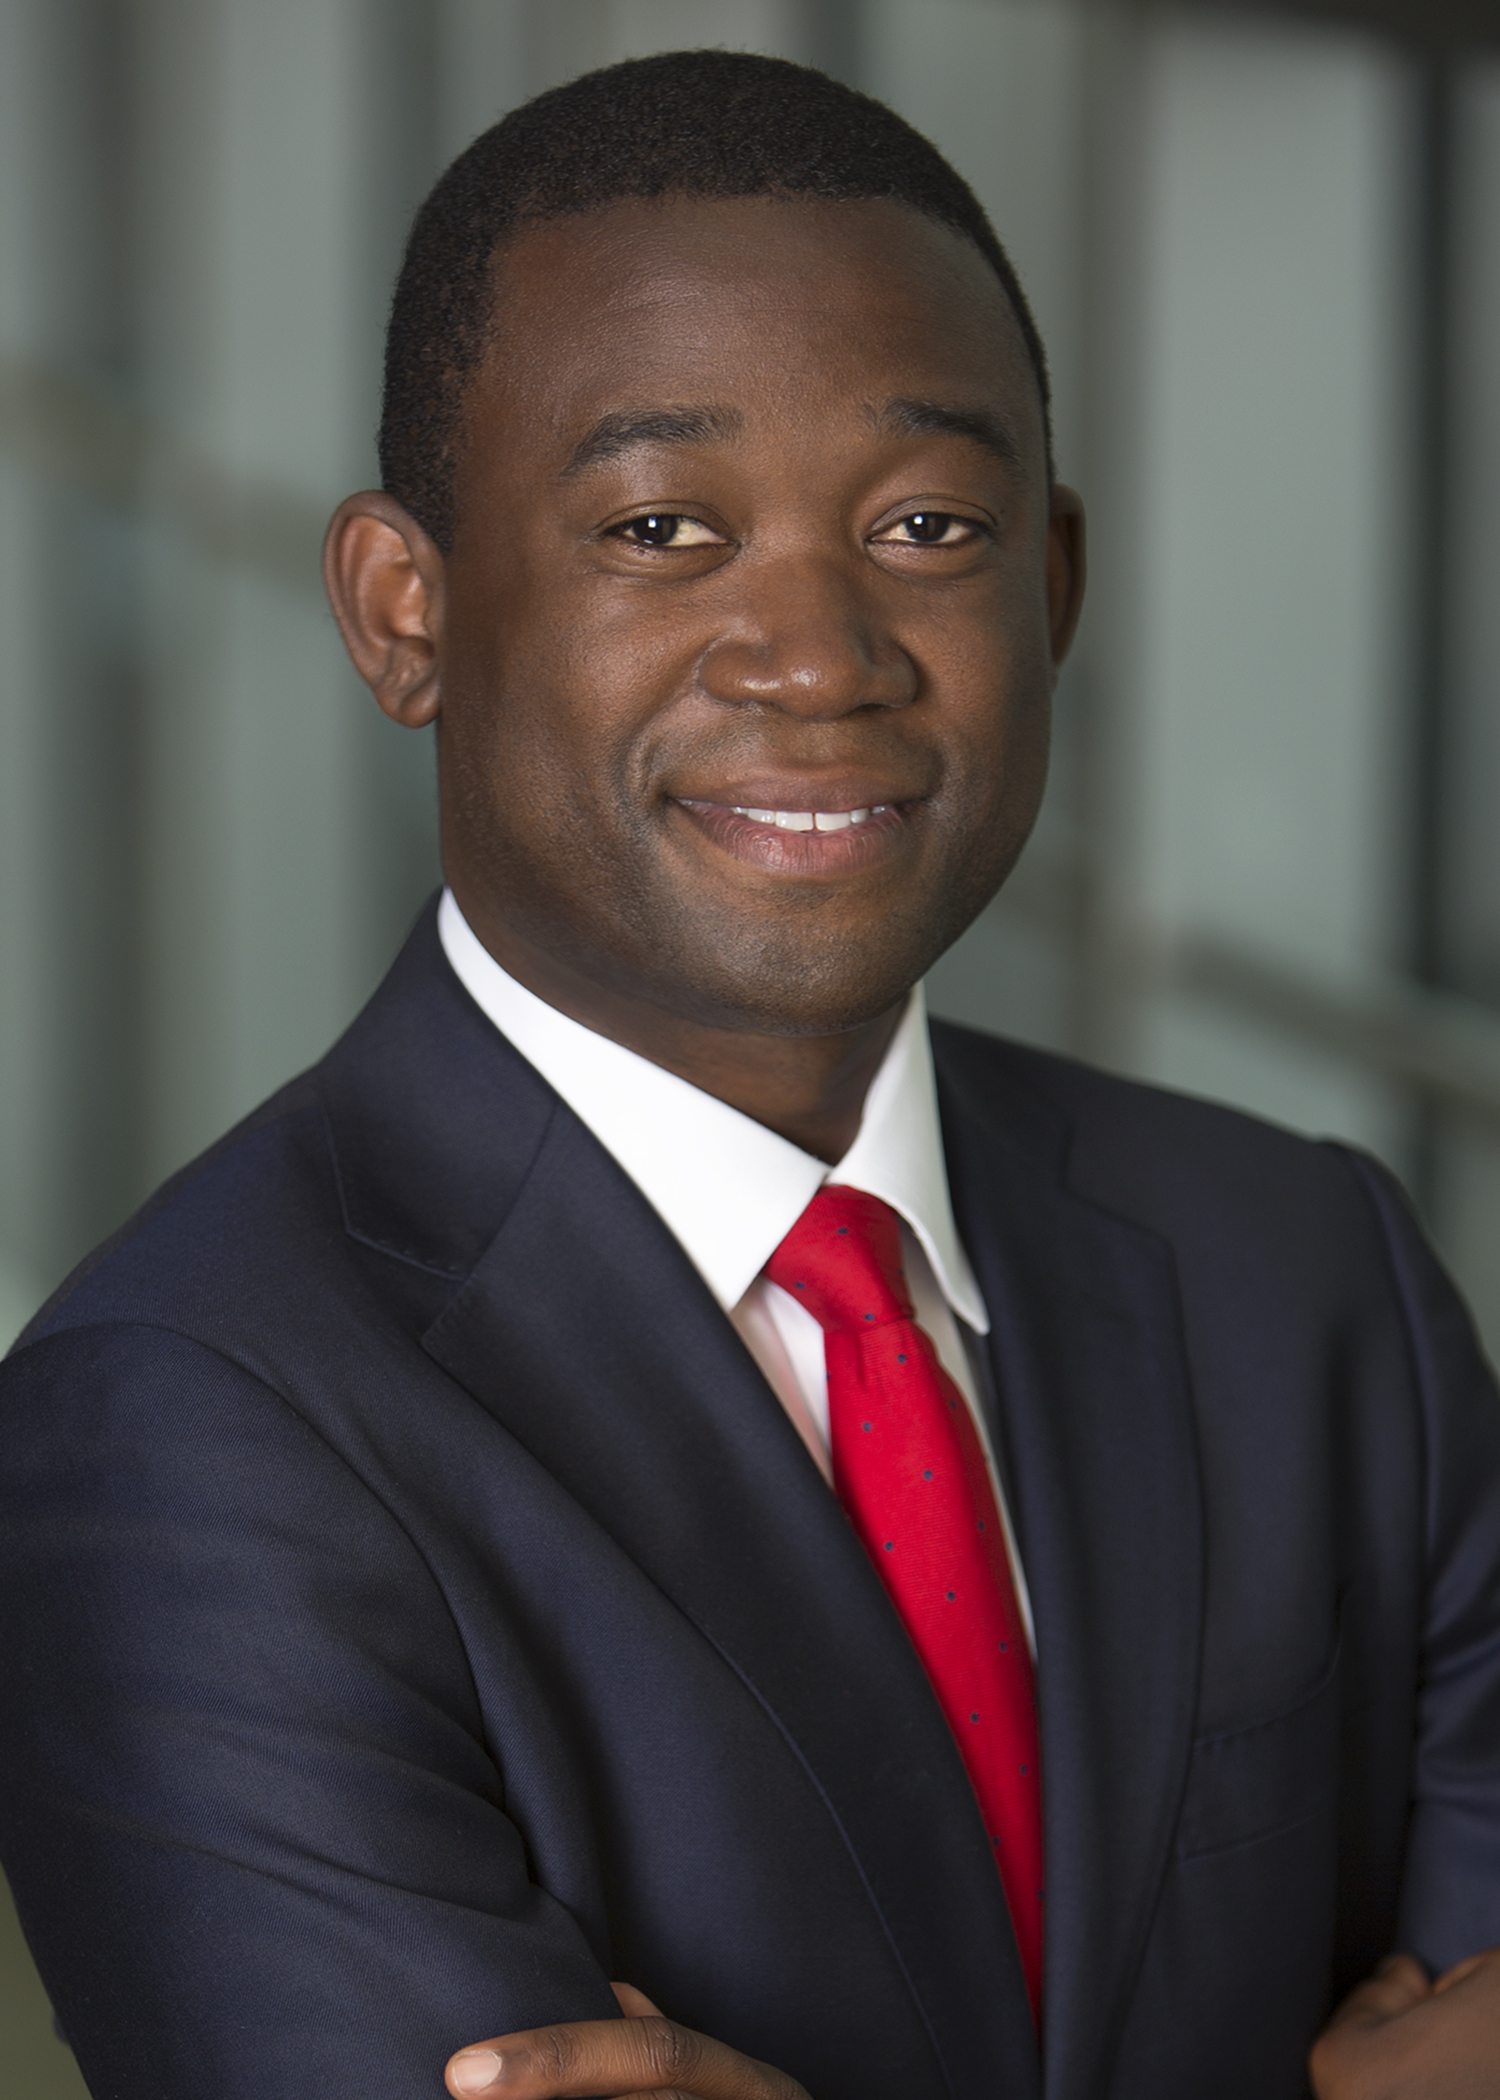 """Adewale """"Wally"""" Adeyemo smiles at the camera with his arms across his chest while wearing a dark blue jacket, white dress shirt and red tie."""